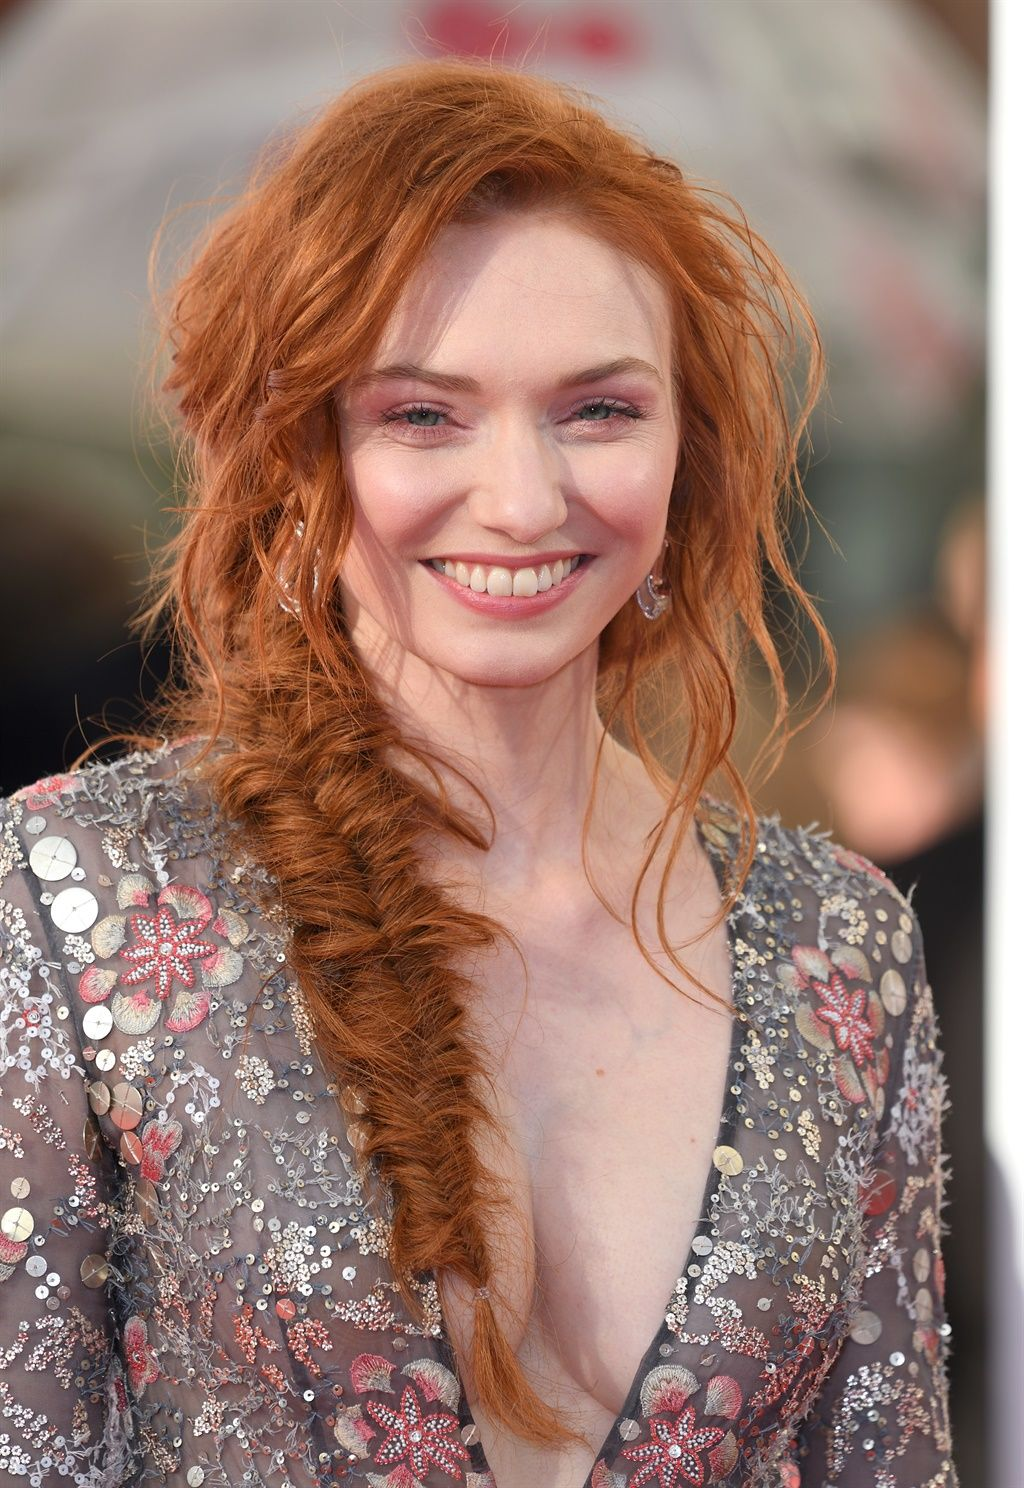 pin by bjsin on red hair | red hair, braided hairstyles